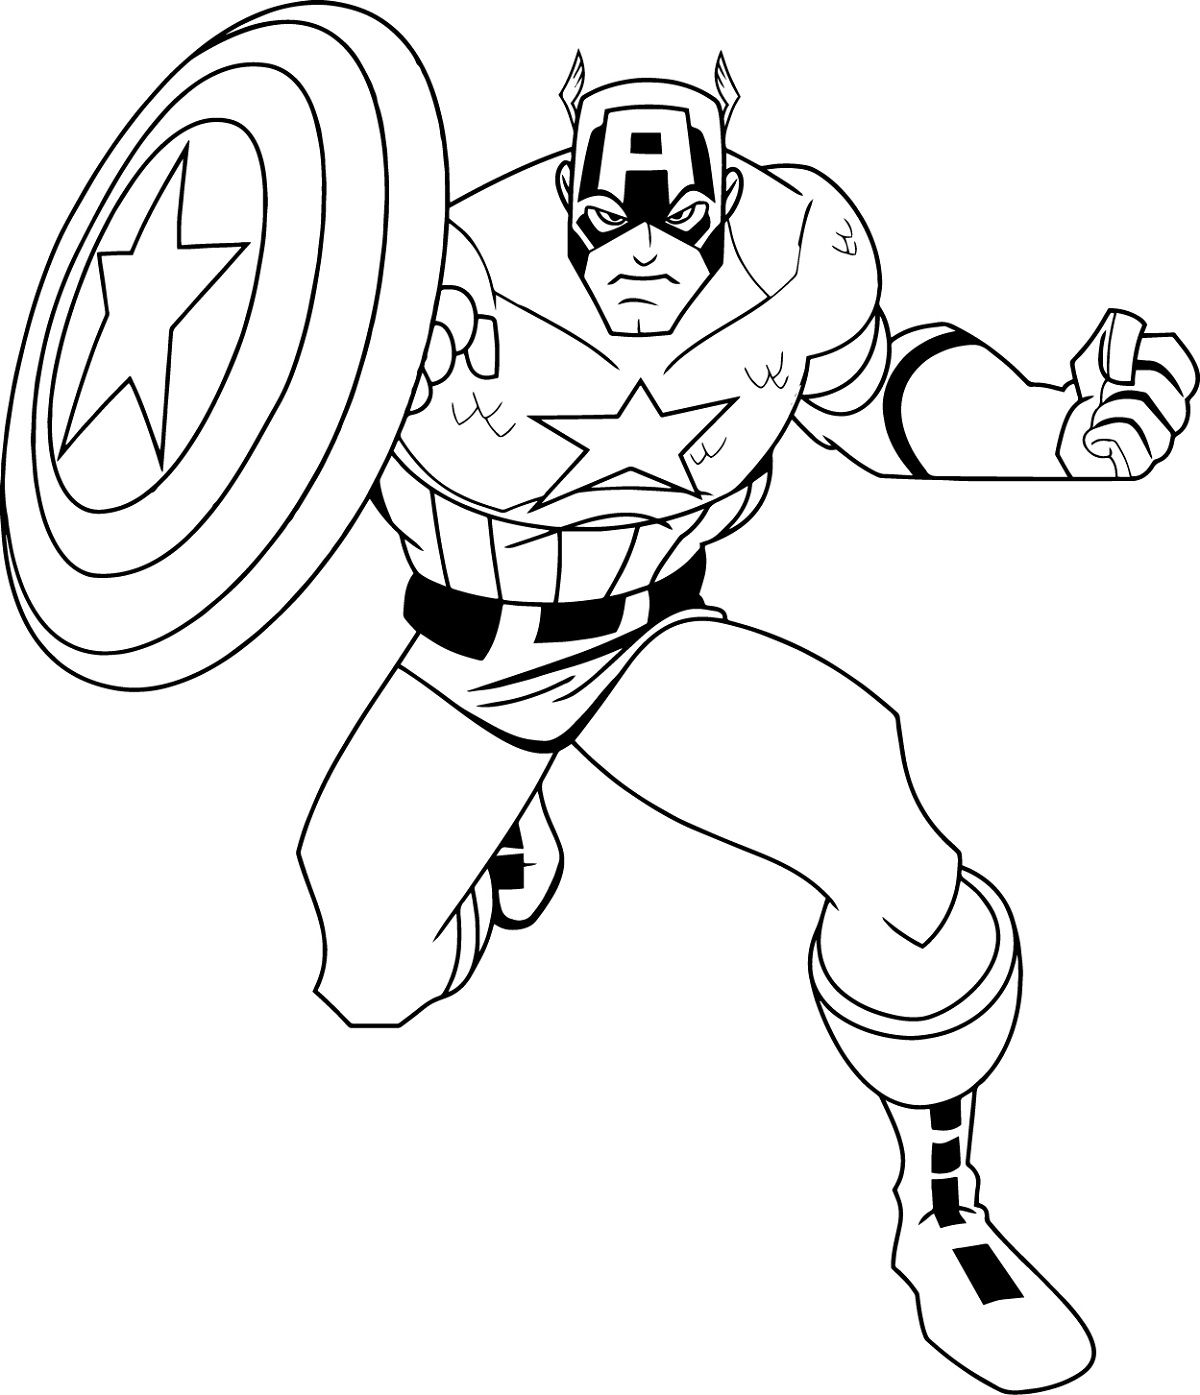 Captain America Coloring Pages Free Download | Educative ...